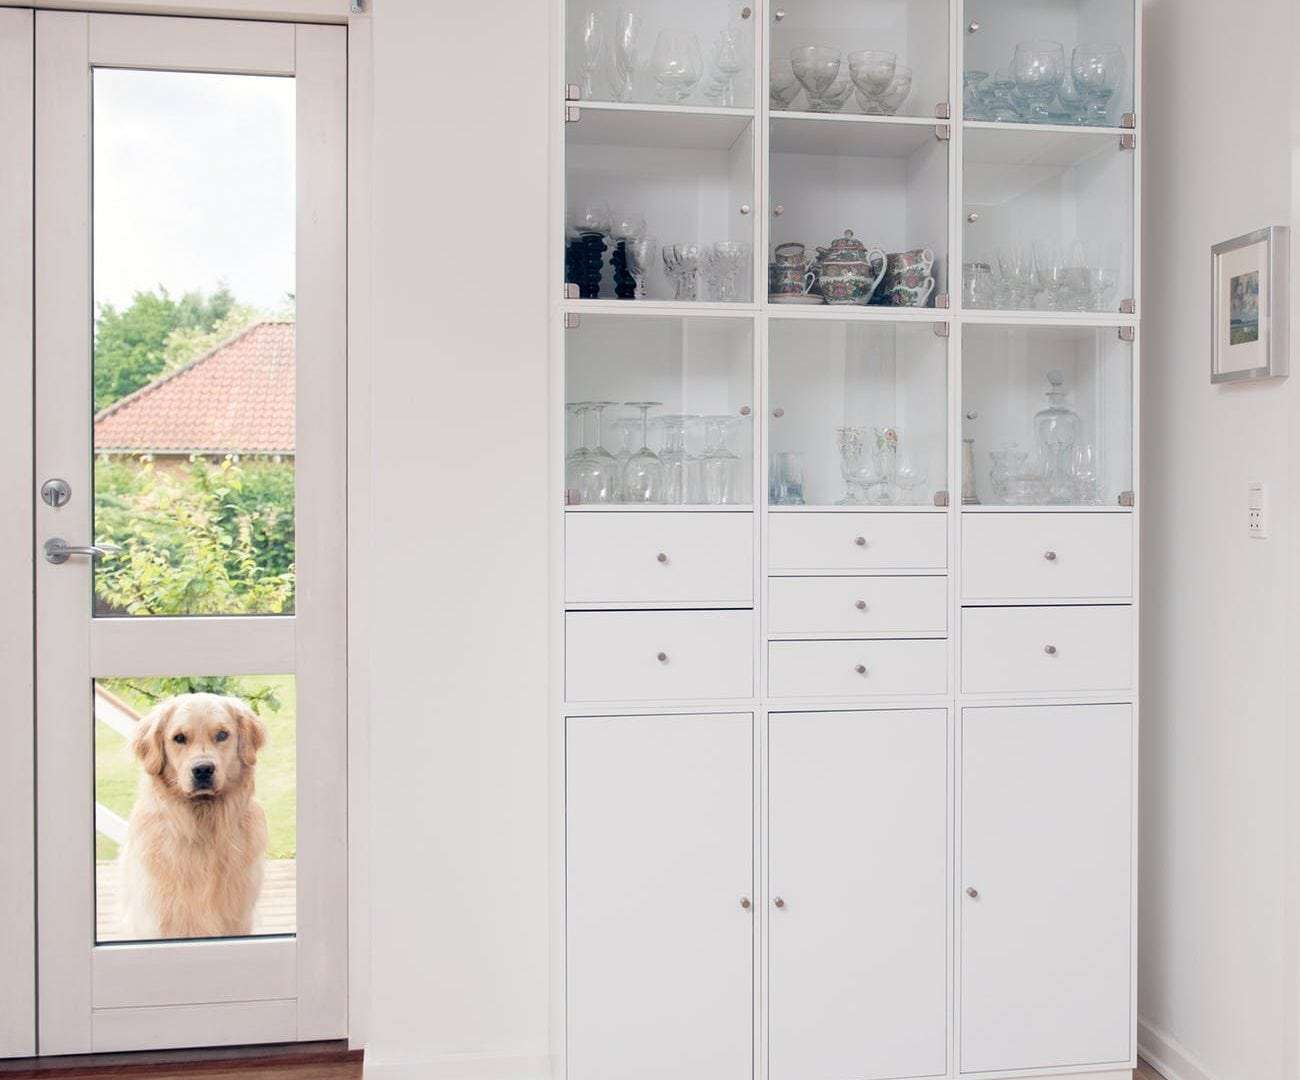 What are the Benefits of Using a Pet Door?